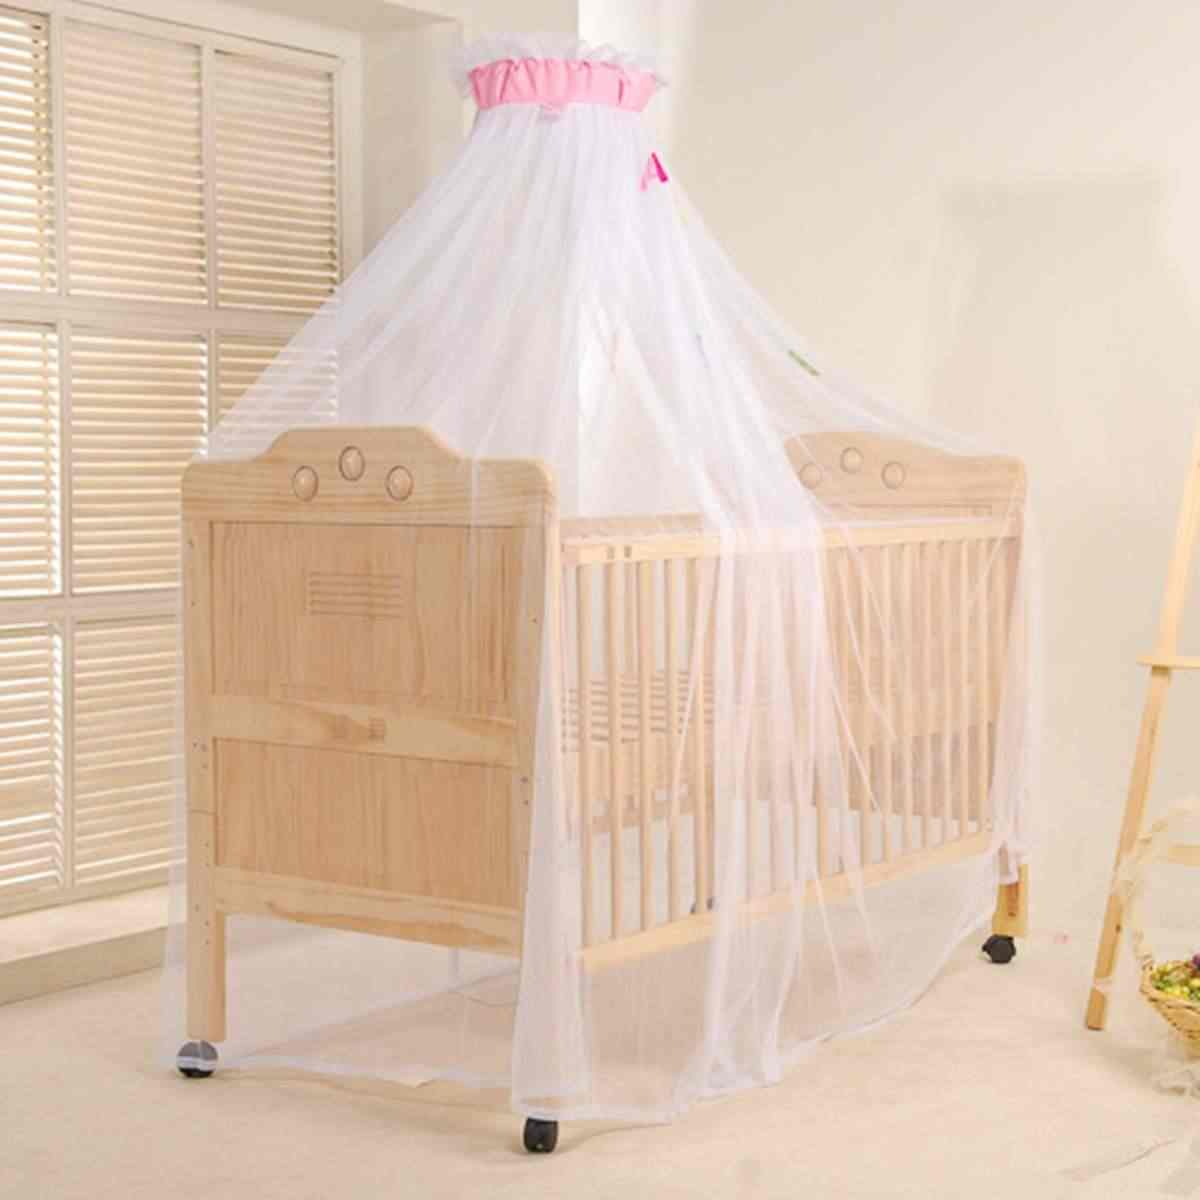 Curtain Dome Mosquito Dome Net Good Protecting Round Nylon Mesh Cloth Insect Bed Canopy Netting Outdoor 2 Colors 35x200x550cm